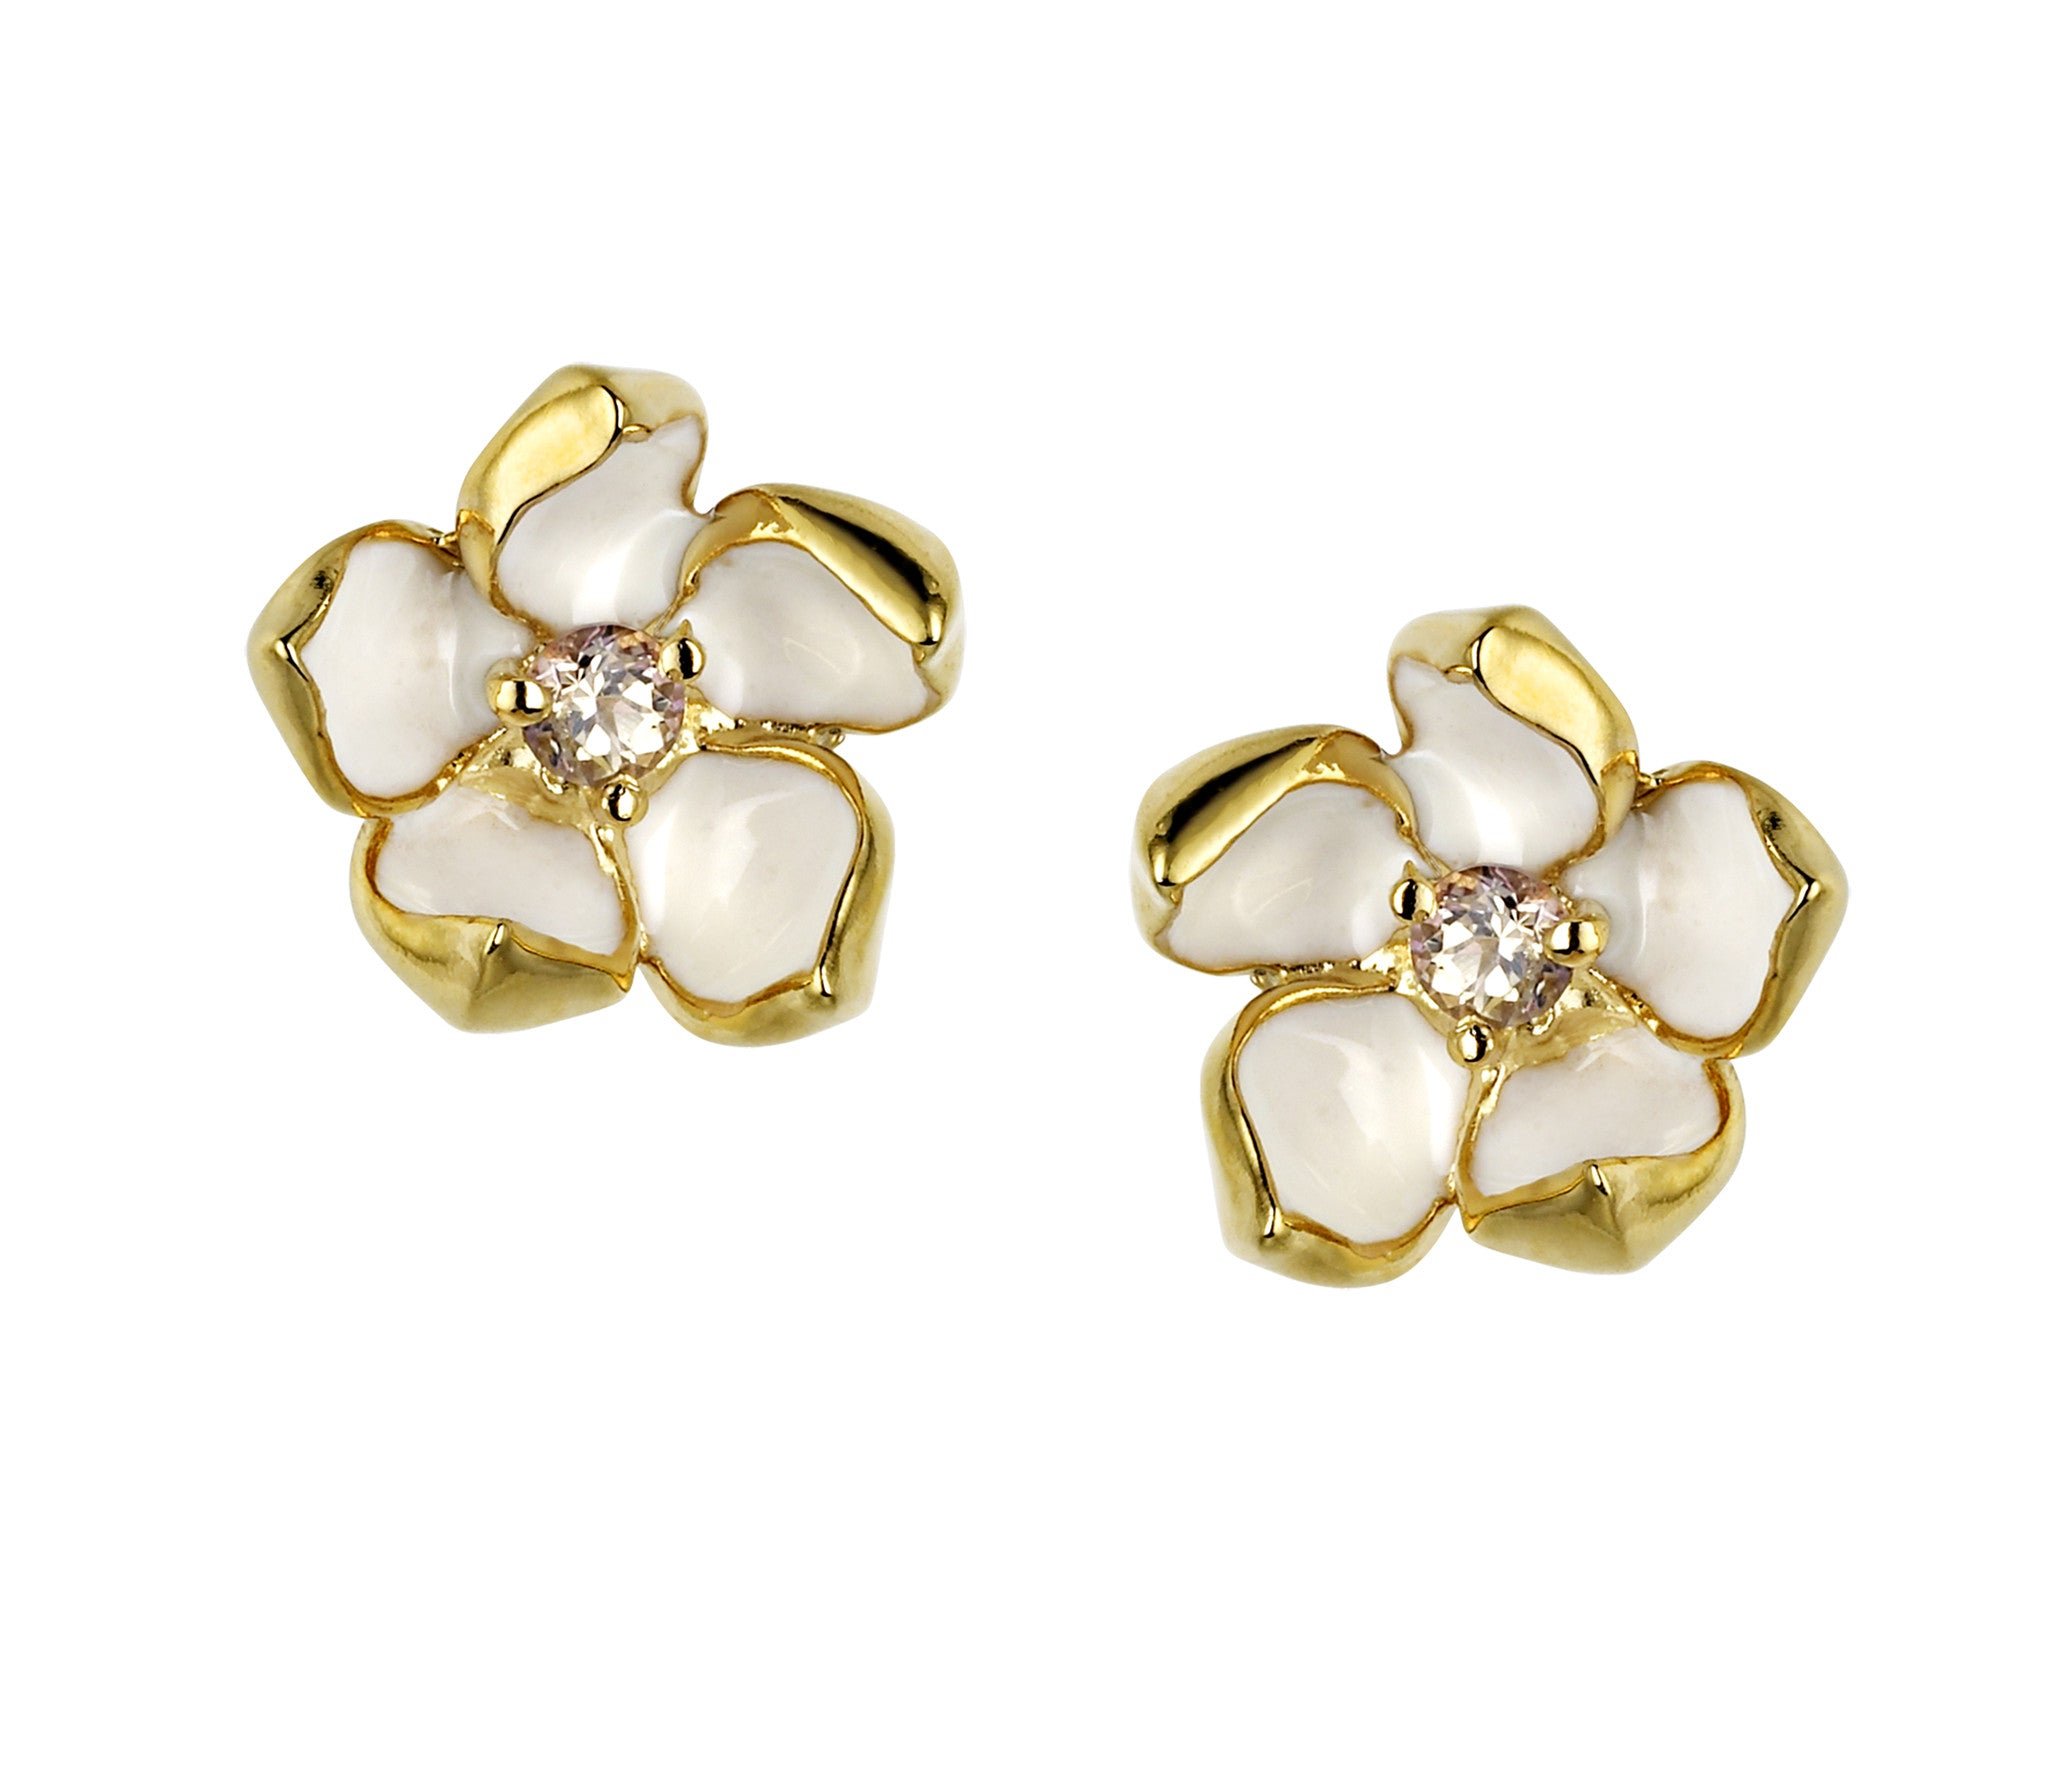 Shaun Leane Earrings Gold Vermeil and Topaz Small Blossom Studs Silver